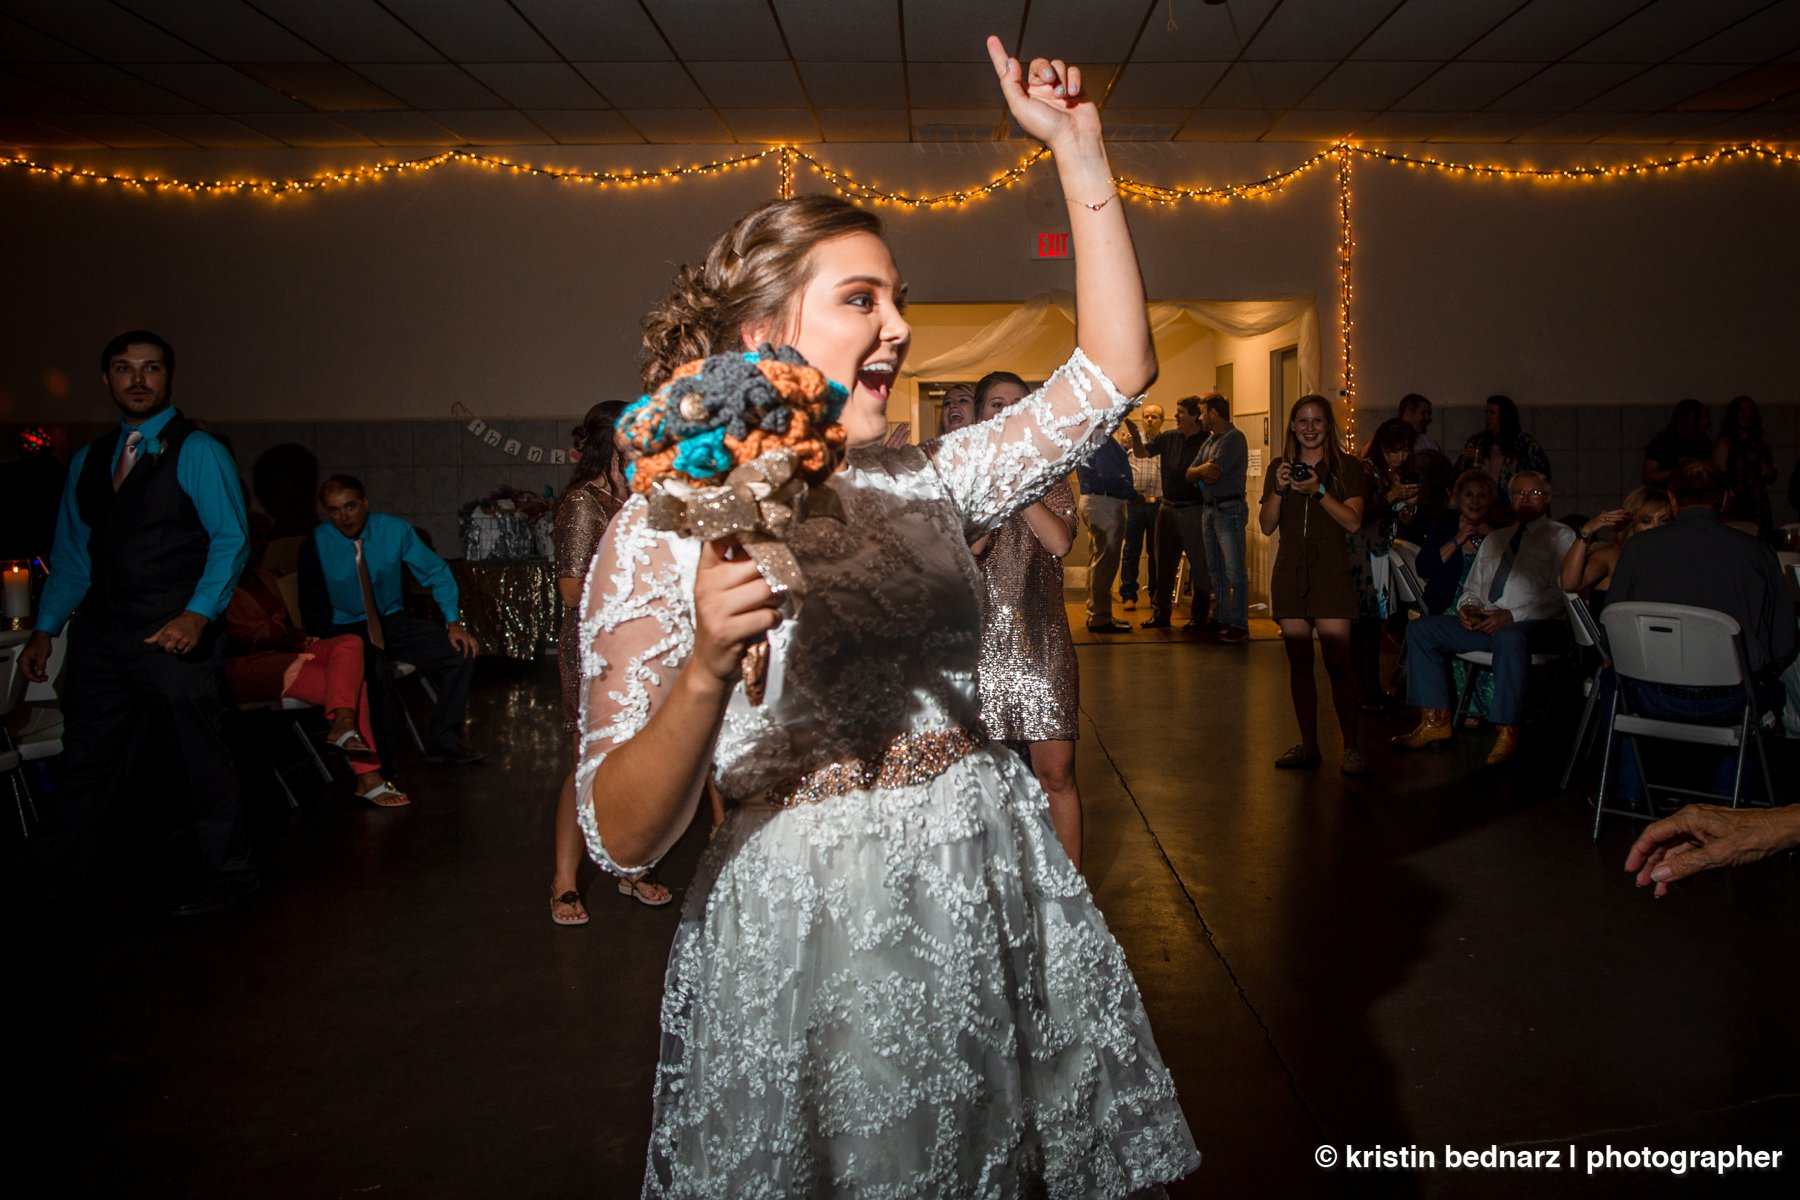 All the normal activity at a wedding reception ensued. And then, afterwards, the bride changed into shorts and a tshirt and danced her little BOOTY off!  Not even lying!!!  So much dancing and fun ensued that everyone was winded, out of breath and LOVIN' every second of it!!!